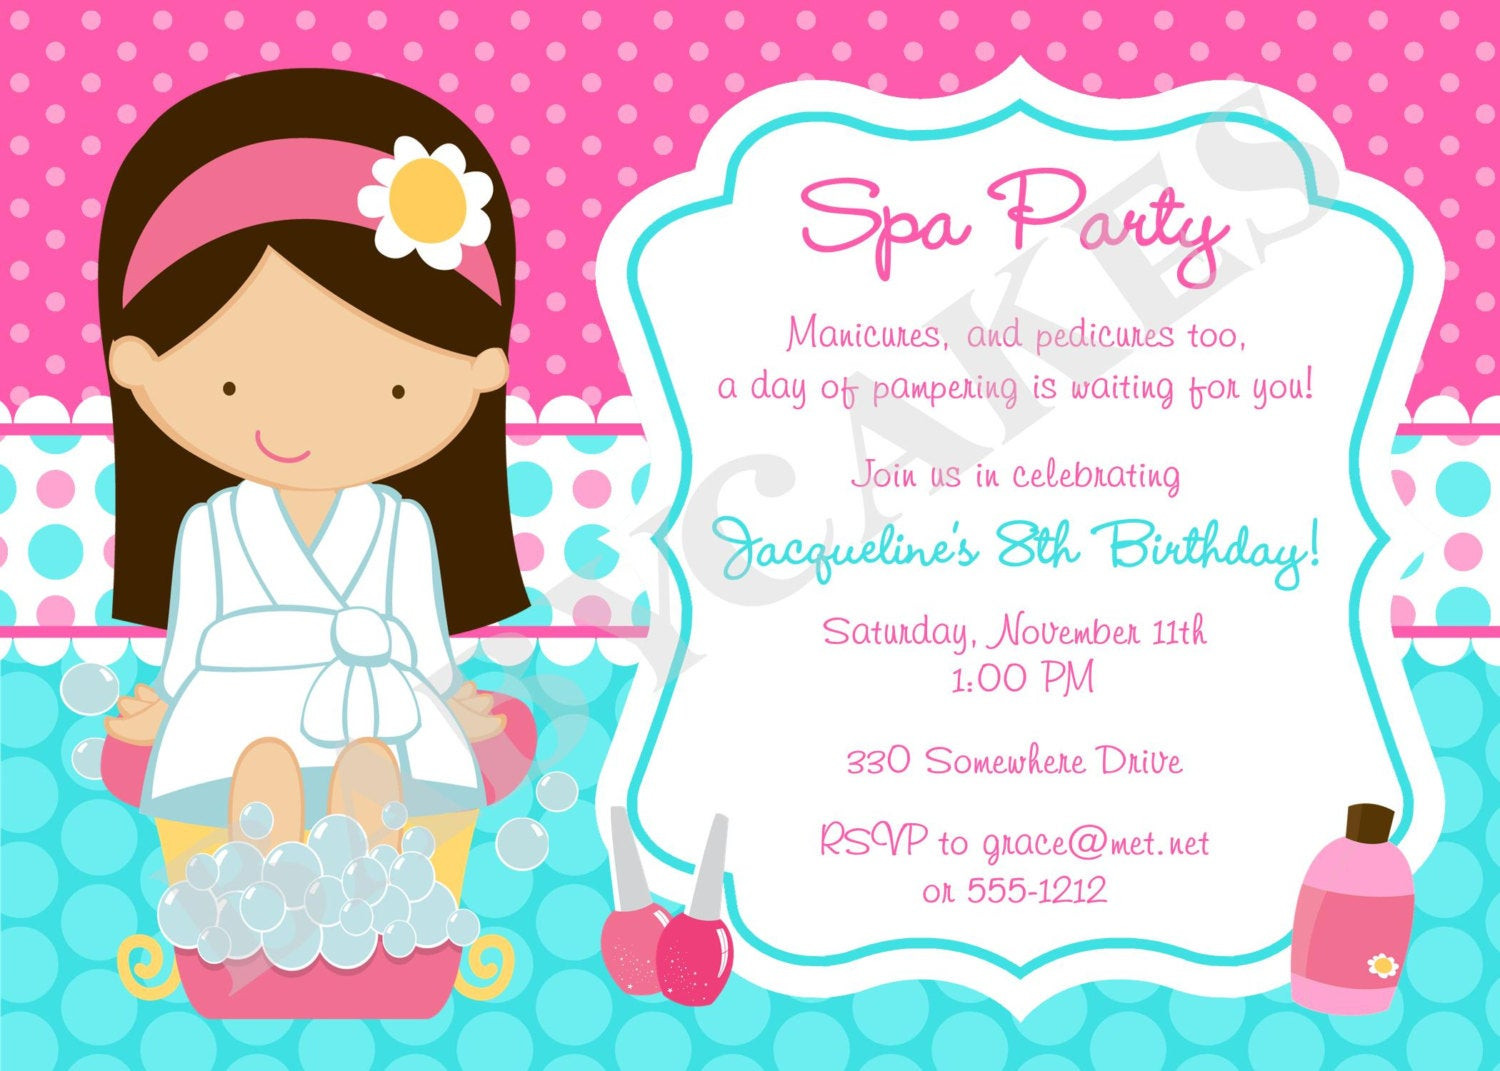 Best ideas about Spa Birthday Invitations . Save or Pin Spa Party Invitation Spa Birthday Party Spa invitation Now.